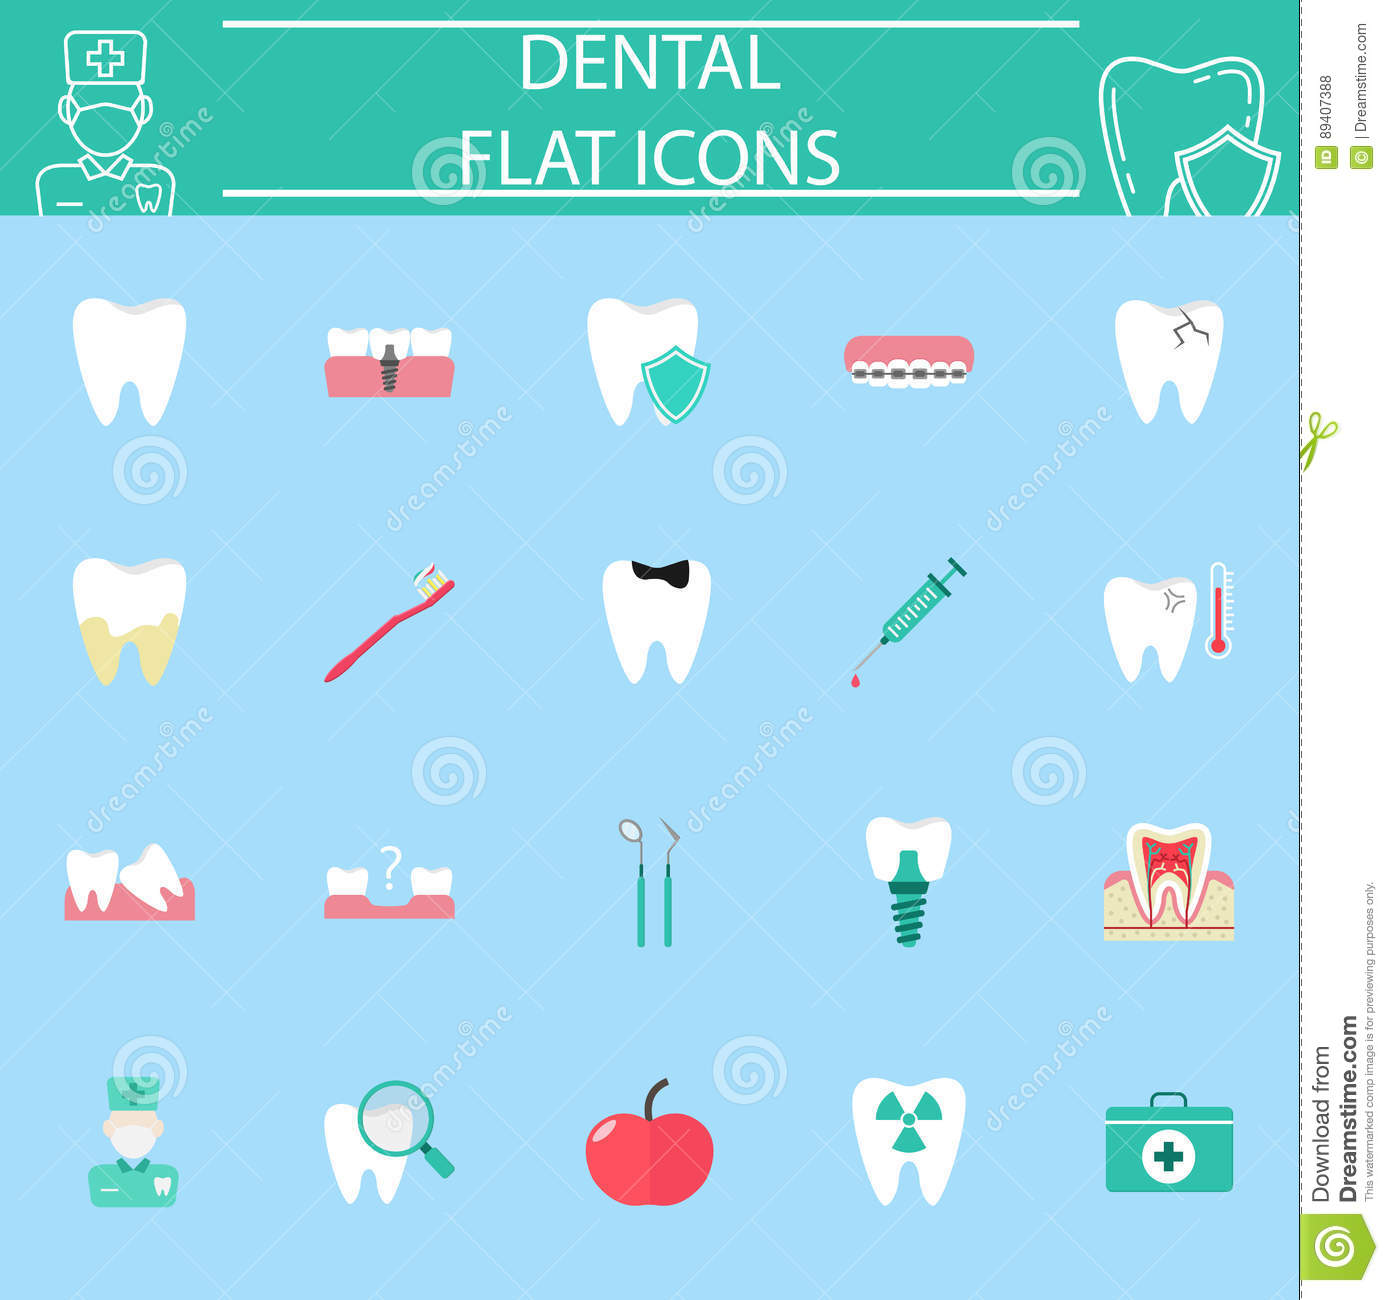 Dental Flat Icon Set Stomatology Symbols Collection Medicine Electrical Symbol Isolated On A White Background Stock Colorful Solid Blue